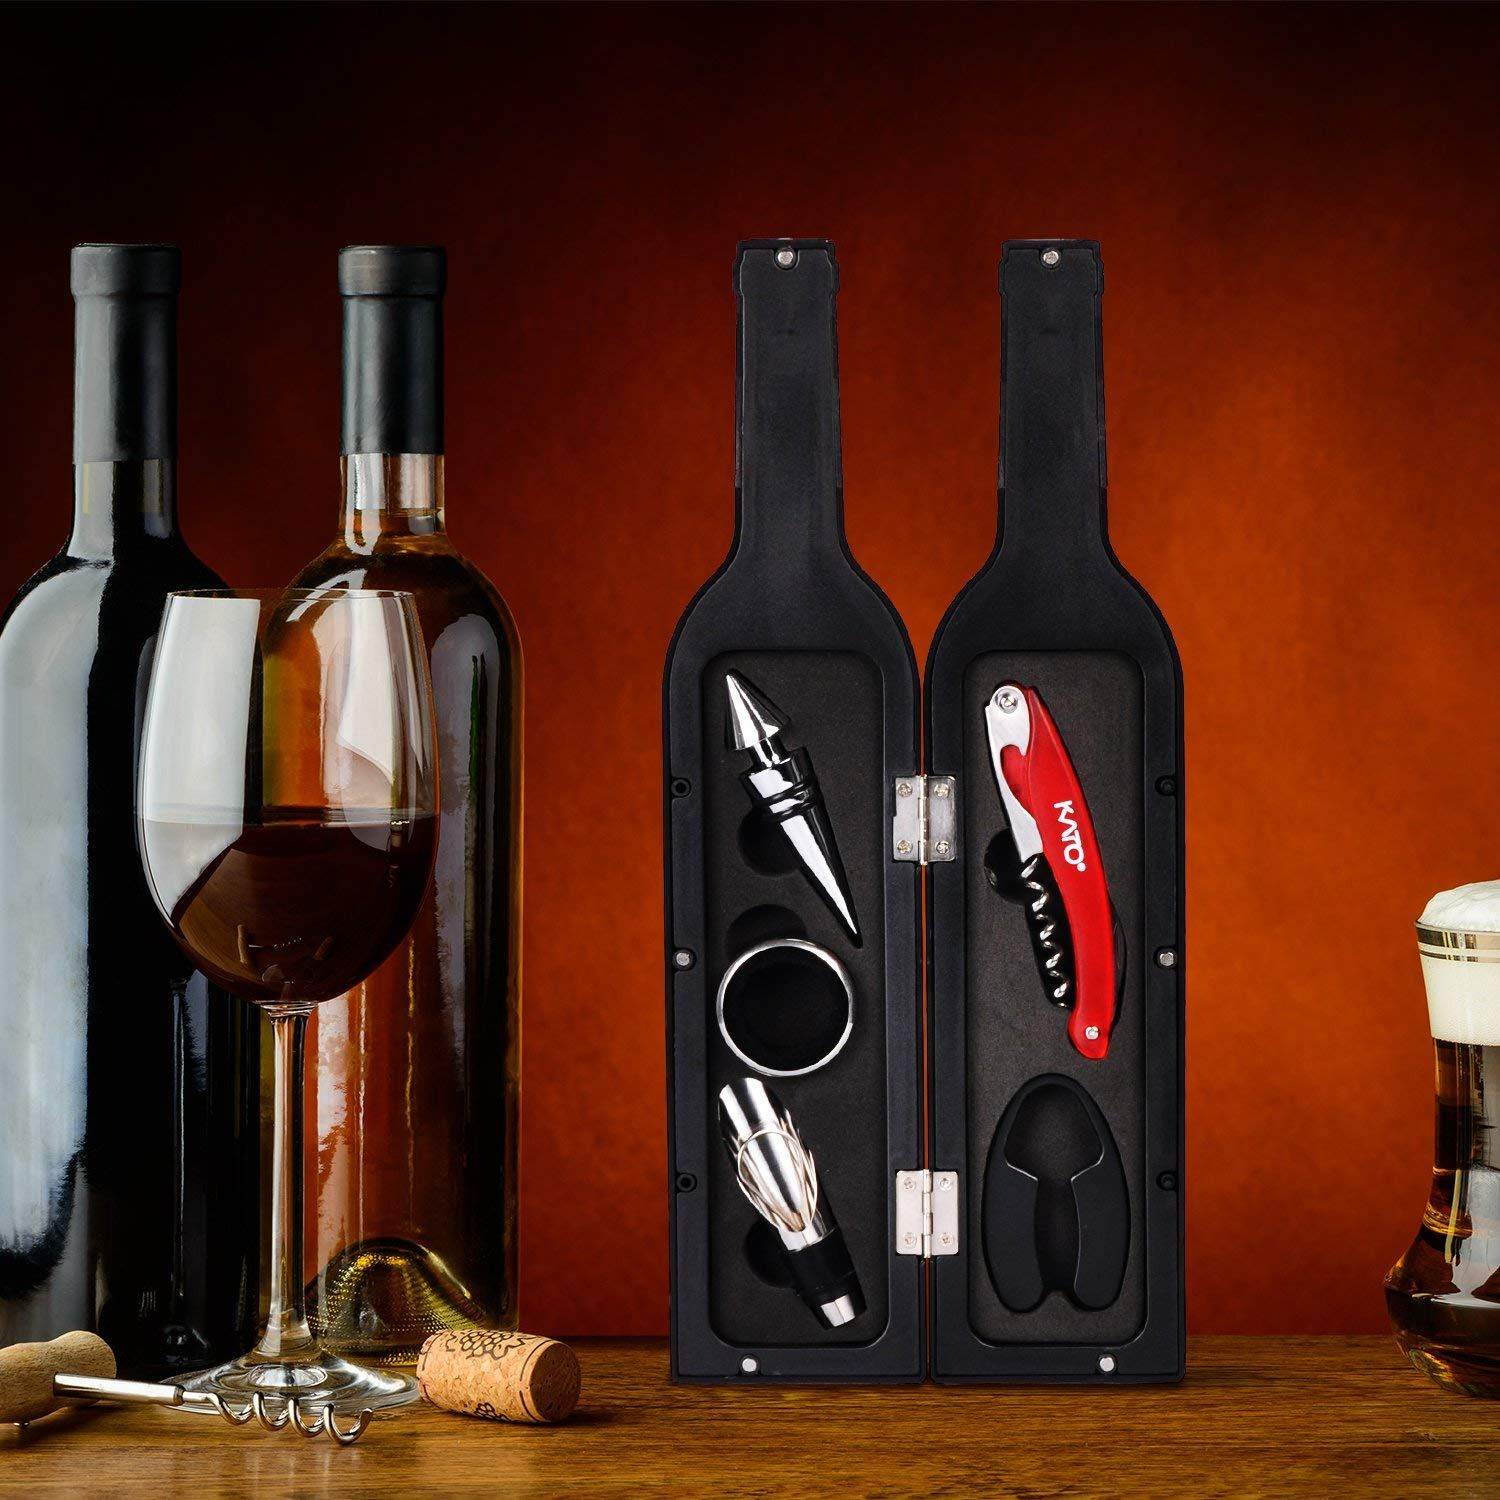 Amazon Com Wine Bottle Accessories Gift Set 5 Pcs Wine Opener Corkscrew Screwpull Kit With Drink St Gifts For Wine Lovers Wine Corkscrew Bottle Accessories